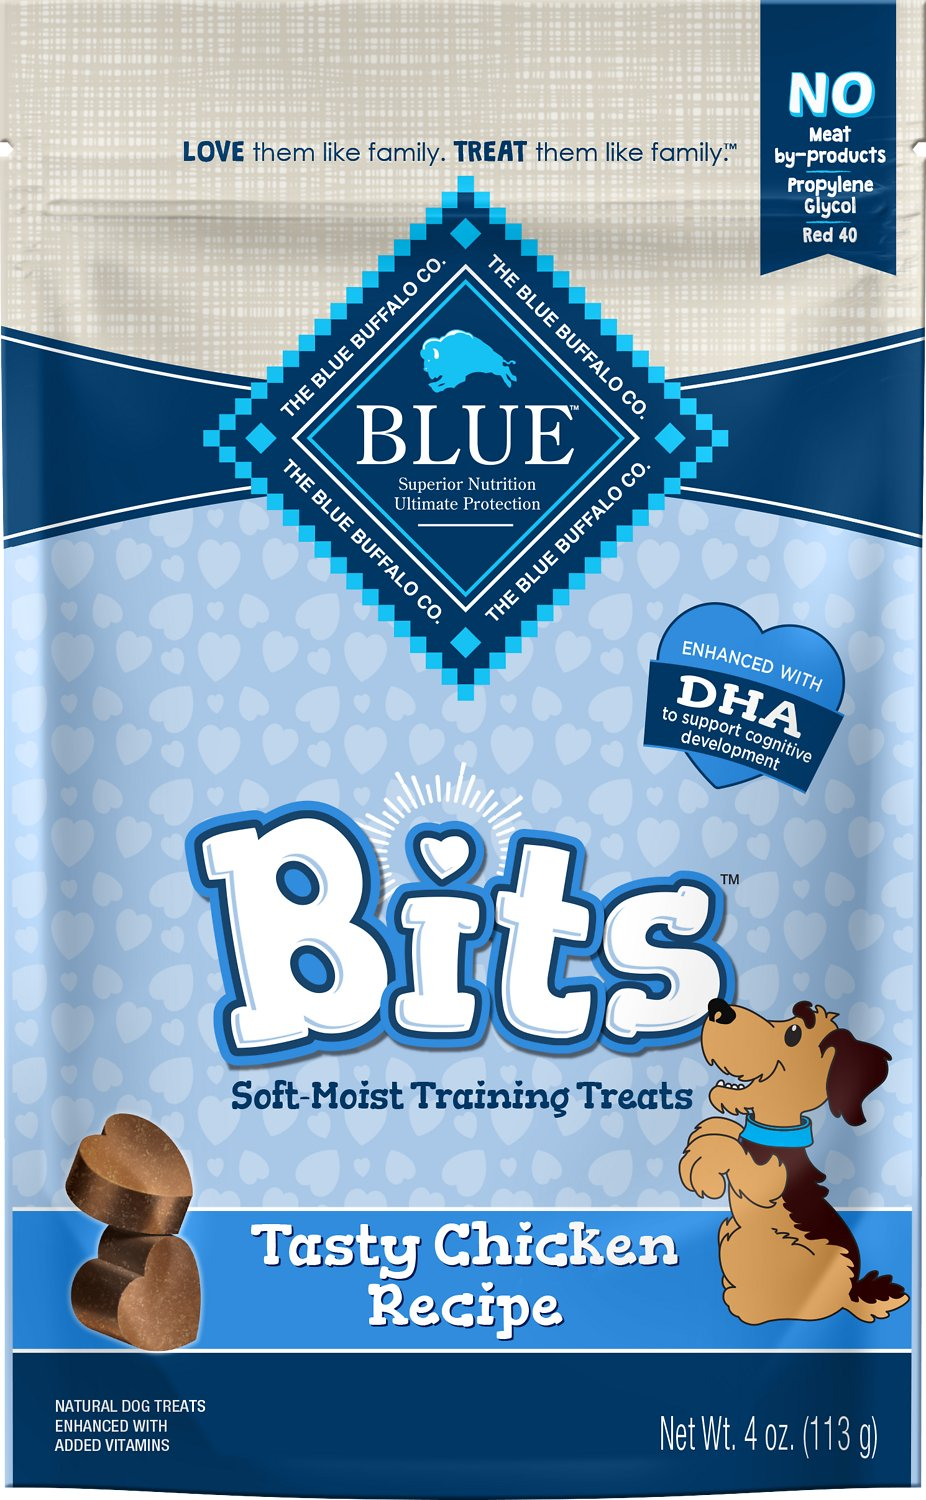 Blue Buffalo - Natural, healthy dog food and cat food. Discover why Blue Buffalo is the best choice for your pet. Check out Blue Buffalo's latest videos to see what's new from BLUE.